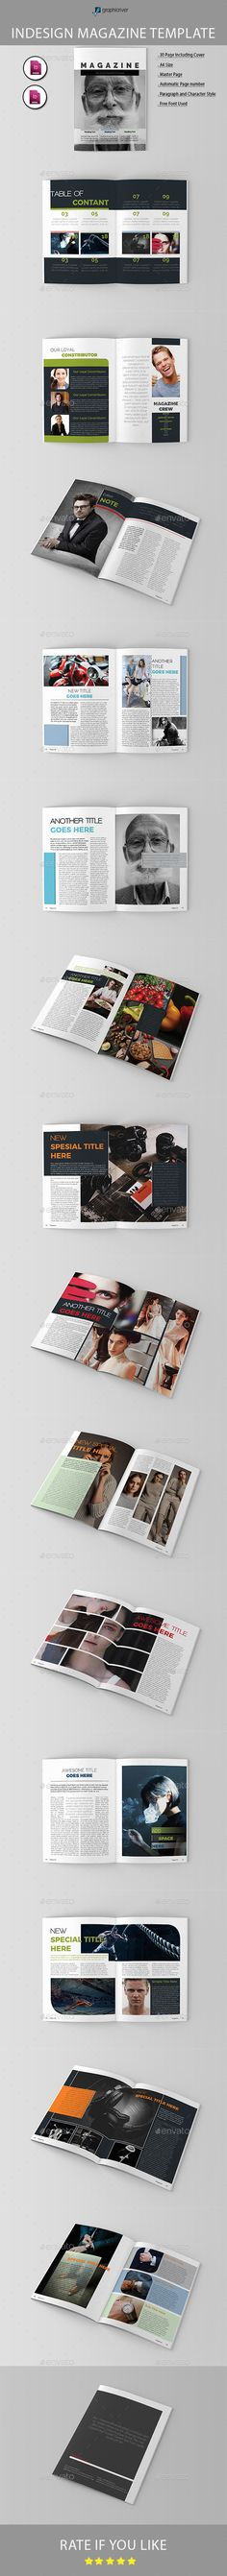 Magazine Template03 by line04 The Magazine Brochure Template that is super simple to edit and customize with your own details! Can be used for other business to